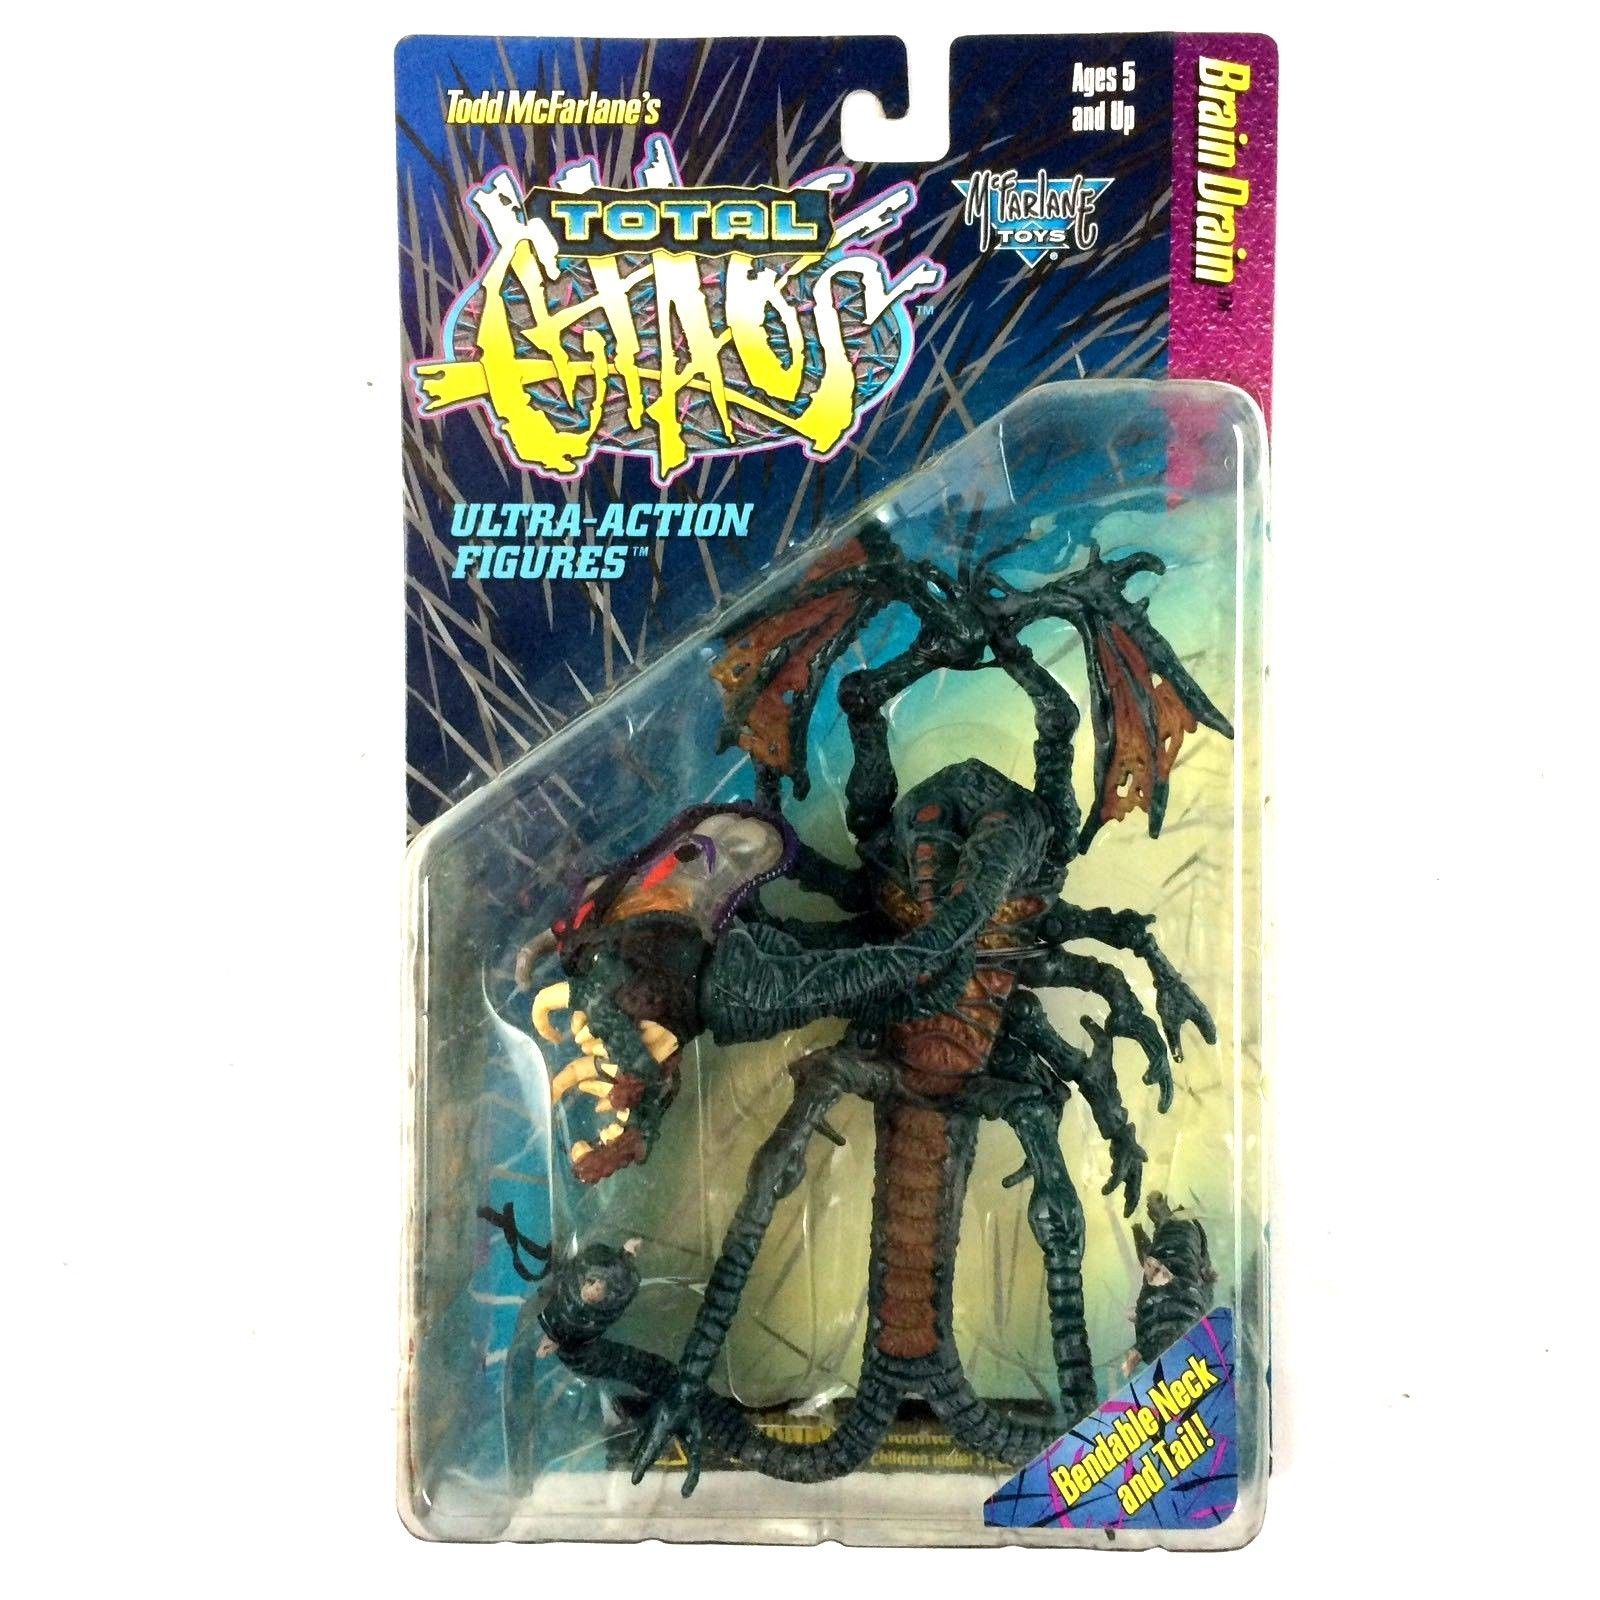 McFarlane Toys Total Chaos Brain Drain Action Figure 1996 Sealed Horror